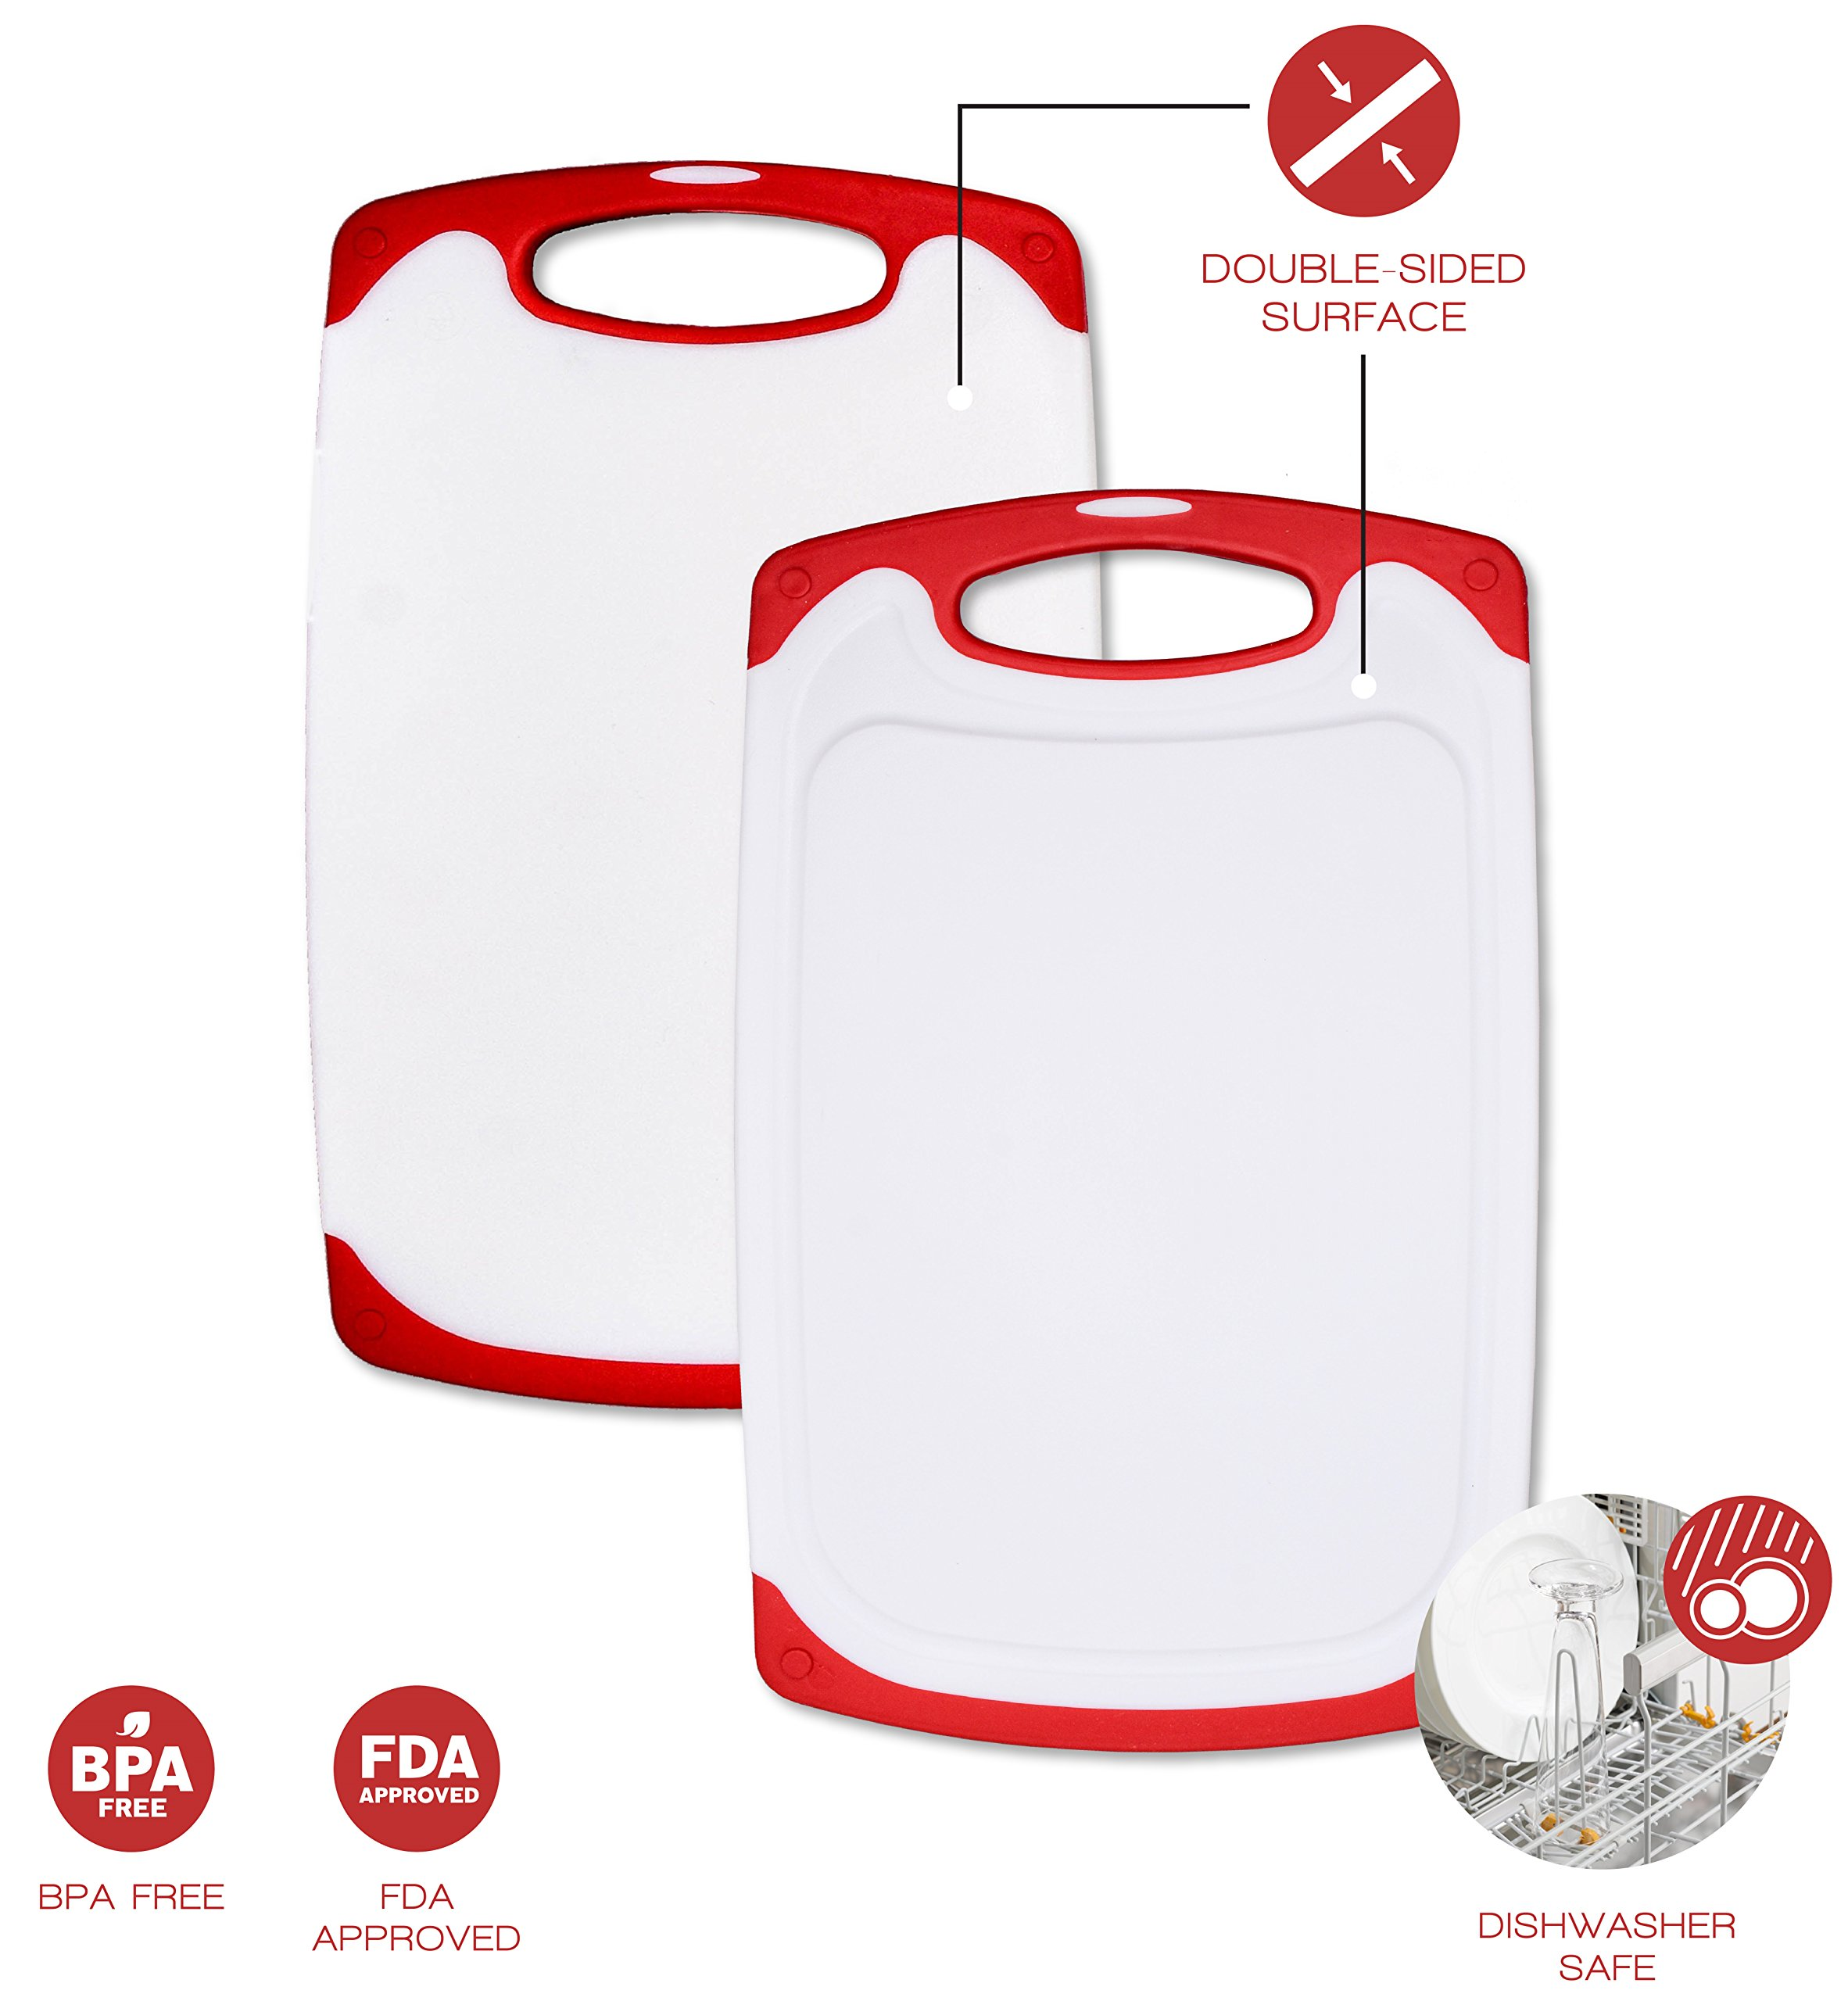 Raj Non-Slip Antibacterial Plastic Cutting Board, Deep Juice Groove, Dishwasher Safe, BPA Free, FDA Approved White and green (2 Pieces, White board with Red Ends)